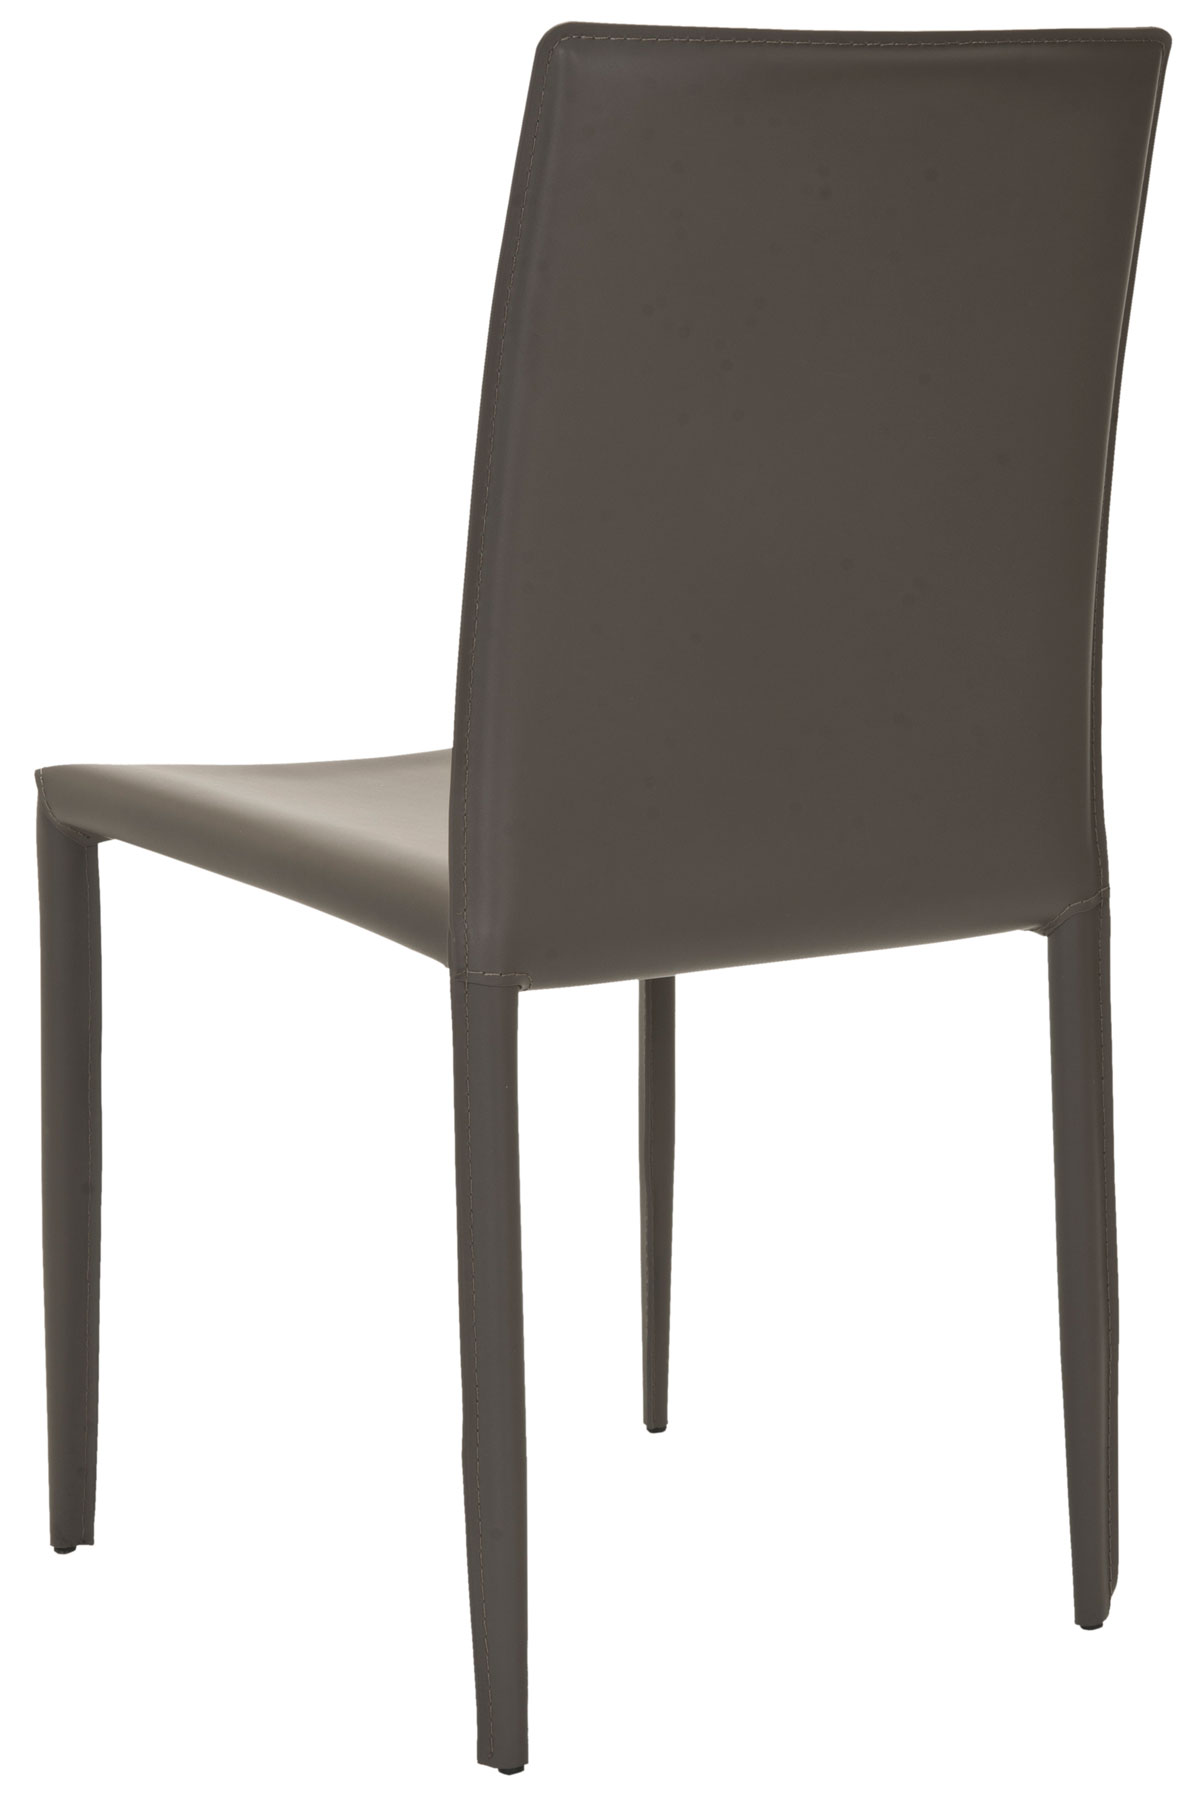 safavieh karna dining chair thonet bentwood rocking fox2009d set2 chairs furniture by